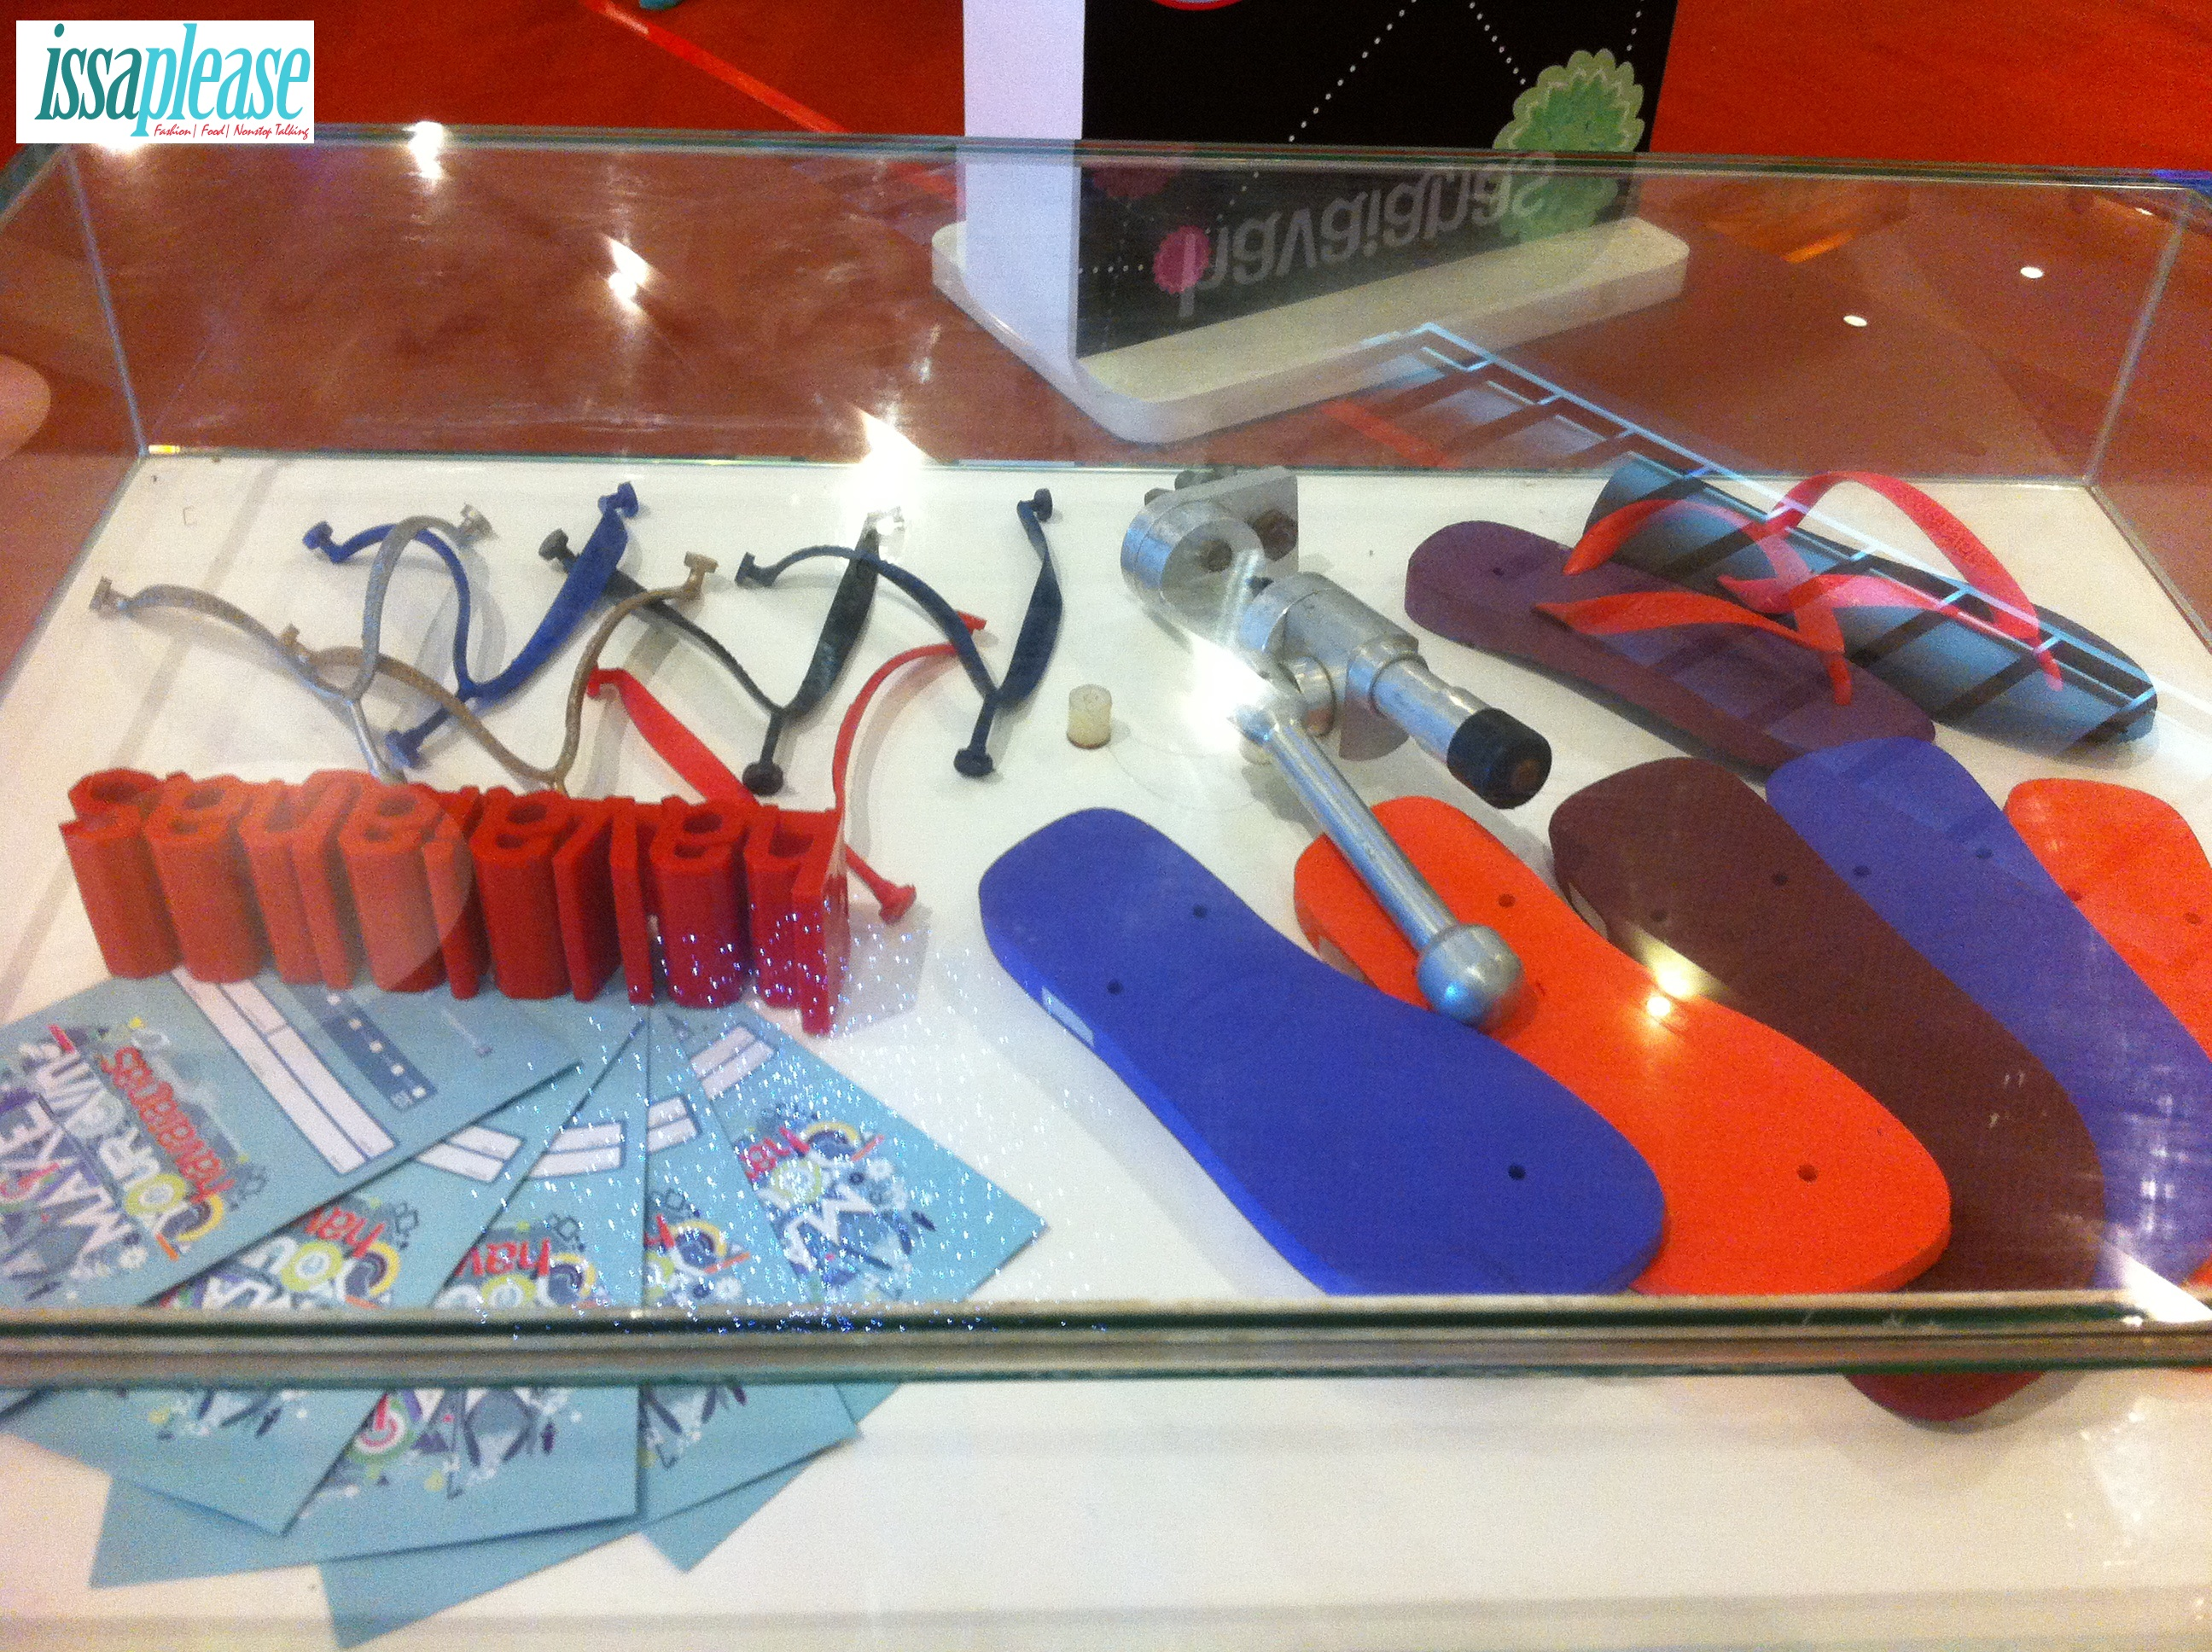 Make Your Own Havaianas 2013 (From the working lines)